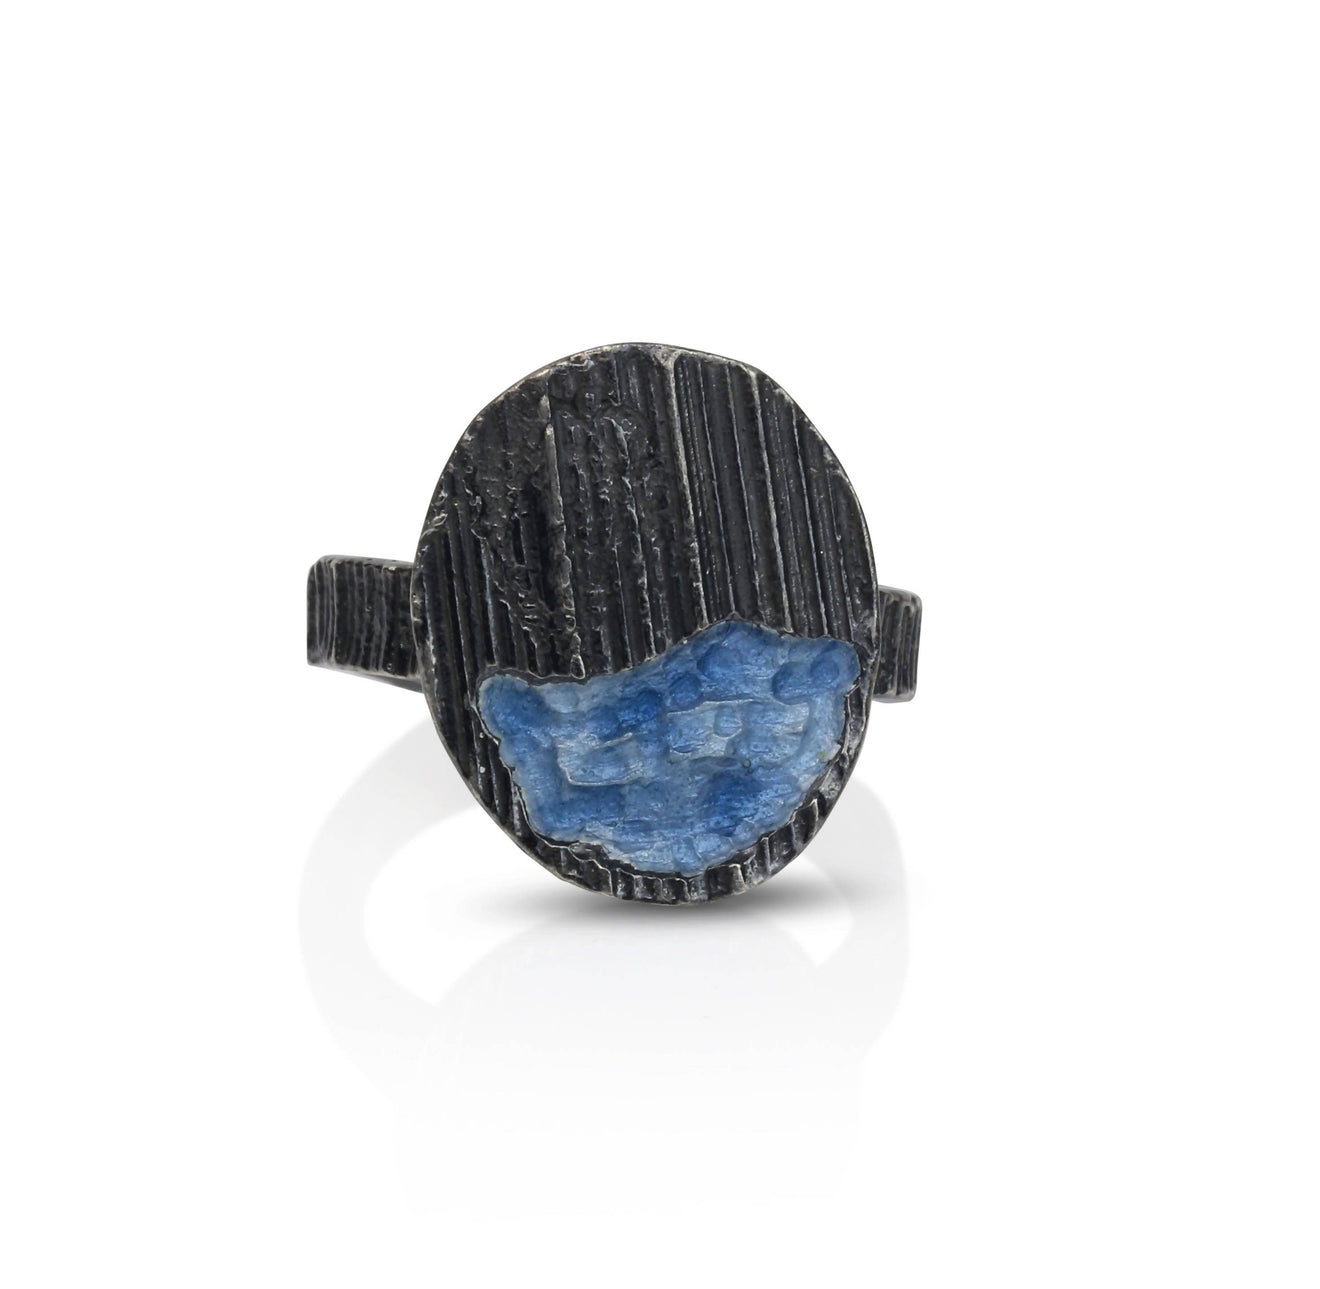 EILY O CONNELL RECYCLED LEVELS RING